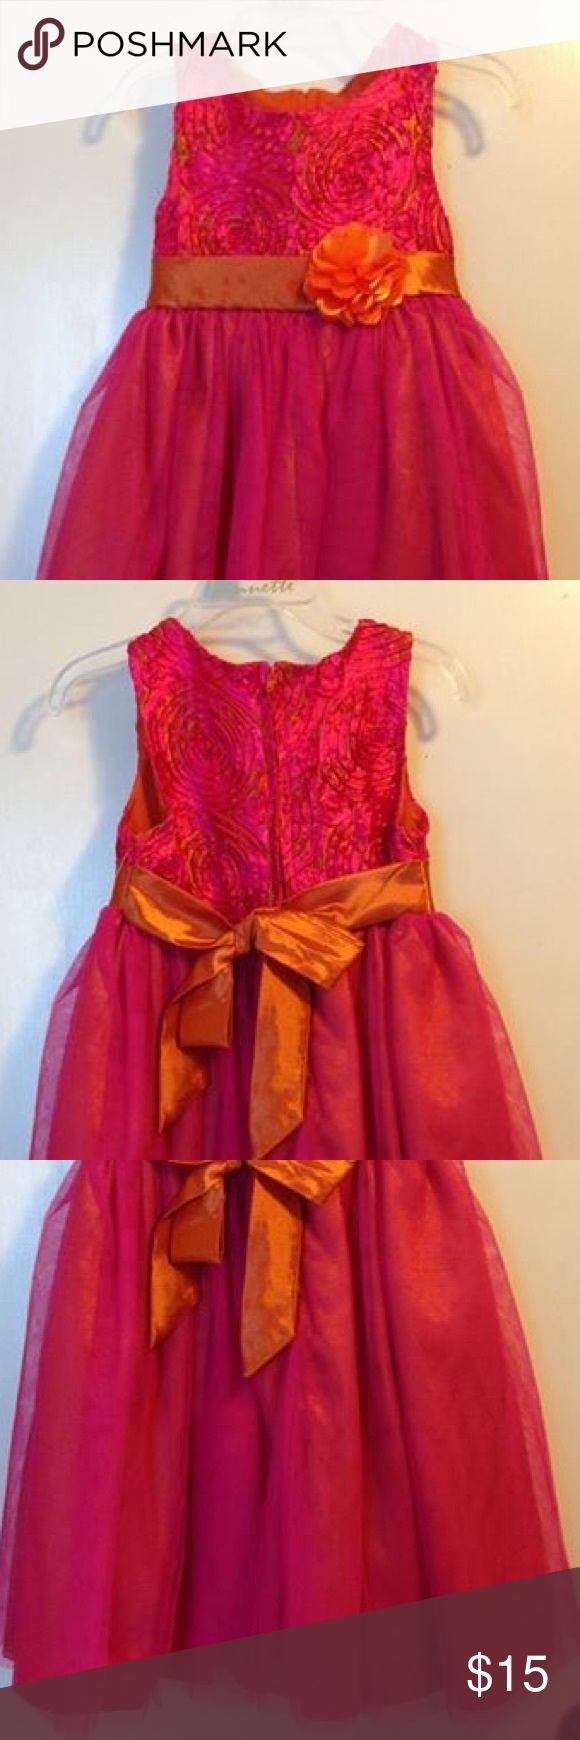 Nannette 4T formal dress hot pink and orange NWOT Way more beautiful in person. Hot pink/orange formal dress. Bought to be used as flower girl dress for a wedding but was never worn. Would be great for a dance, church, wedding or any other special occasion in your little ones life. Nannette Dresses Formal